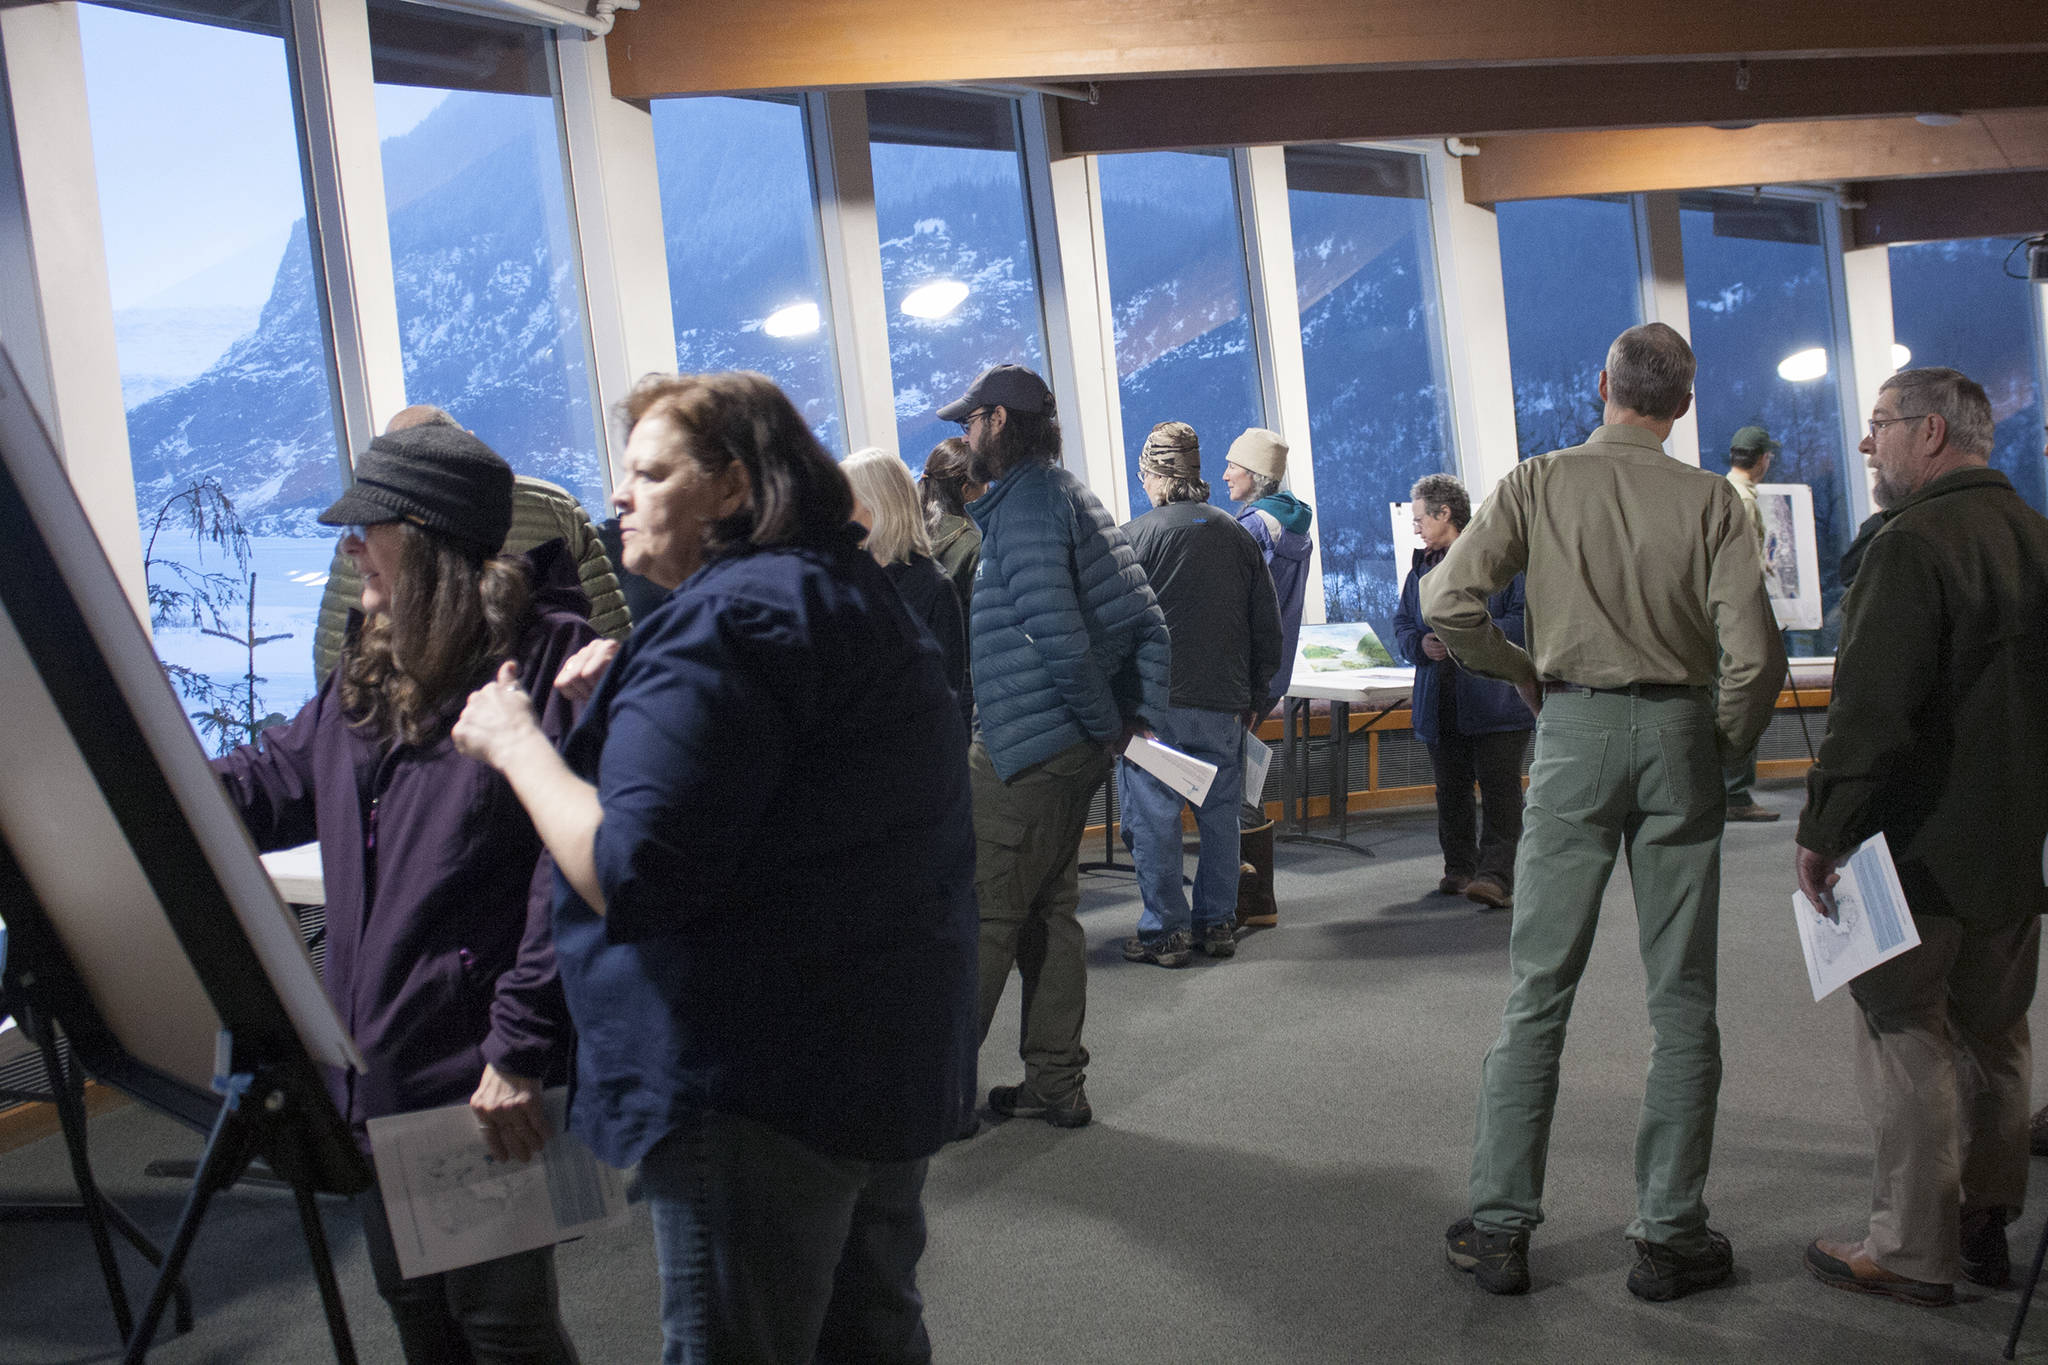 Despite howling winds and plenty of slush, dozens of people attended a scoping open house in February 2020 at the Mendenhall Glacier Visitor Center. (Ben Hohenstatt / Juneau Empire File)